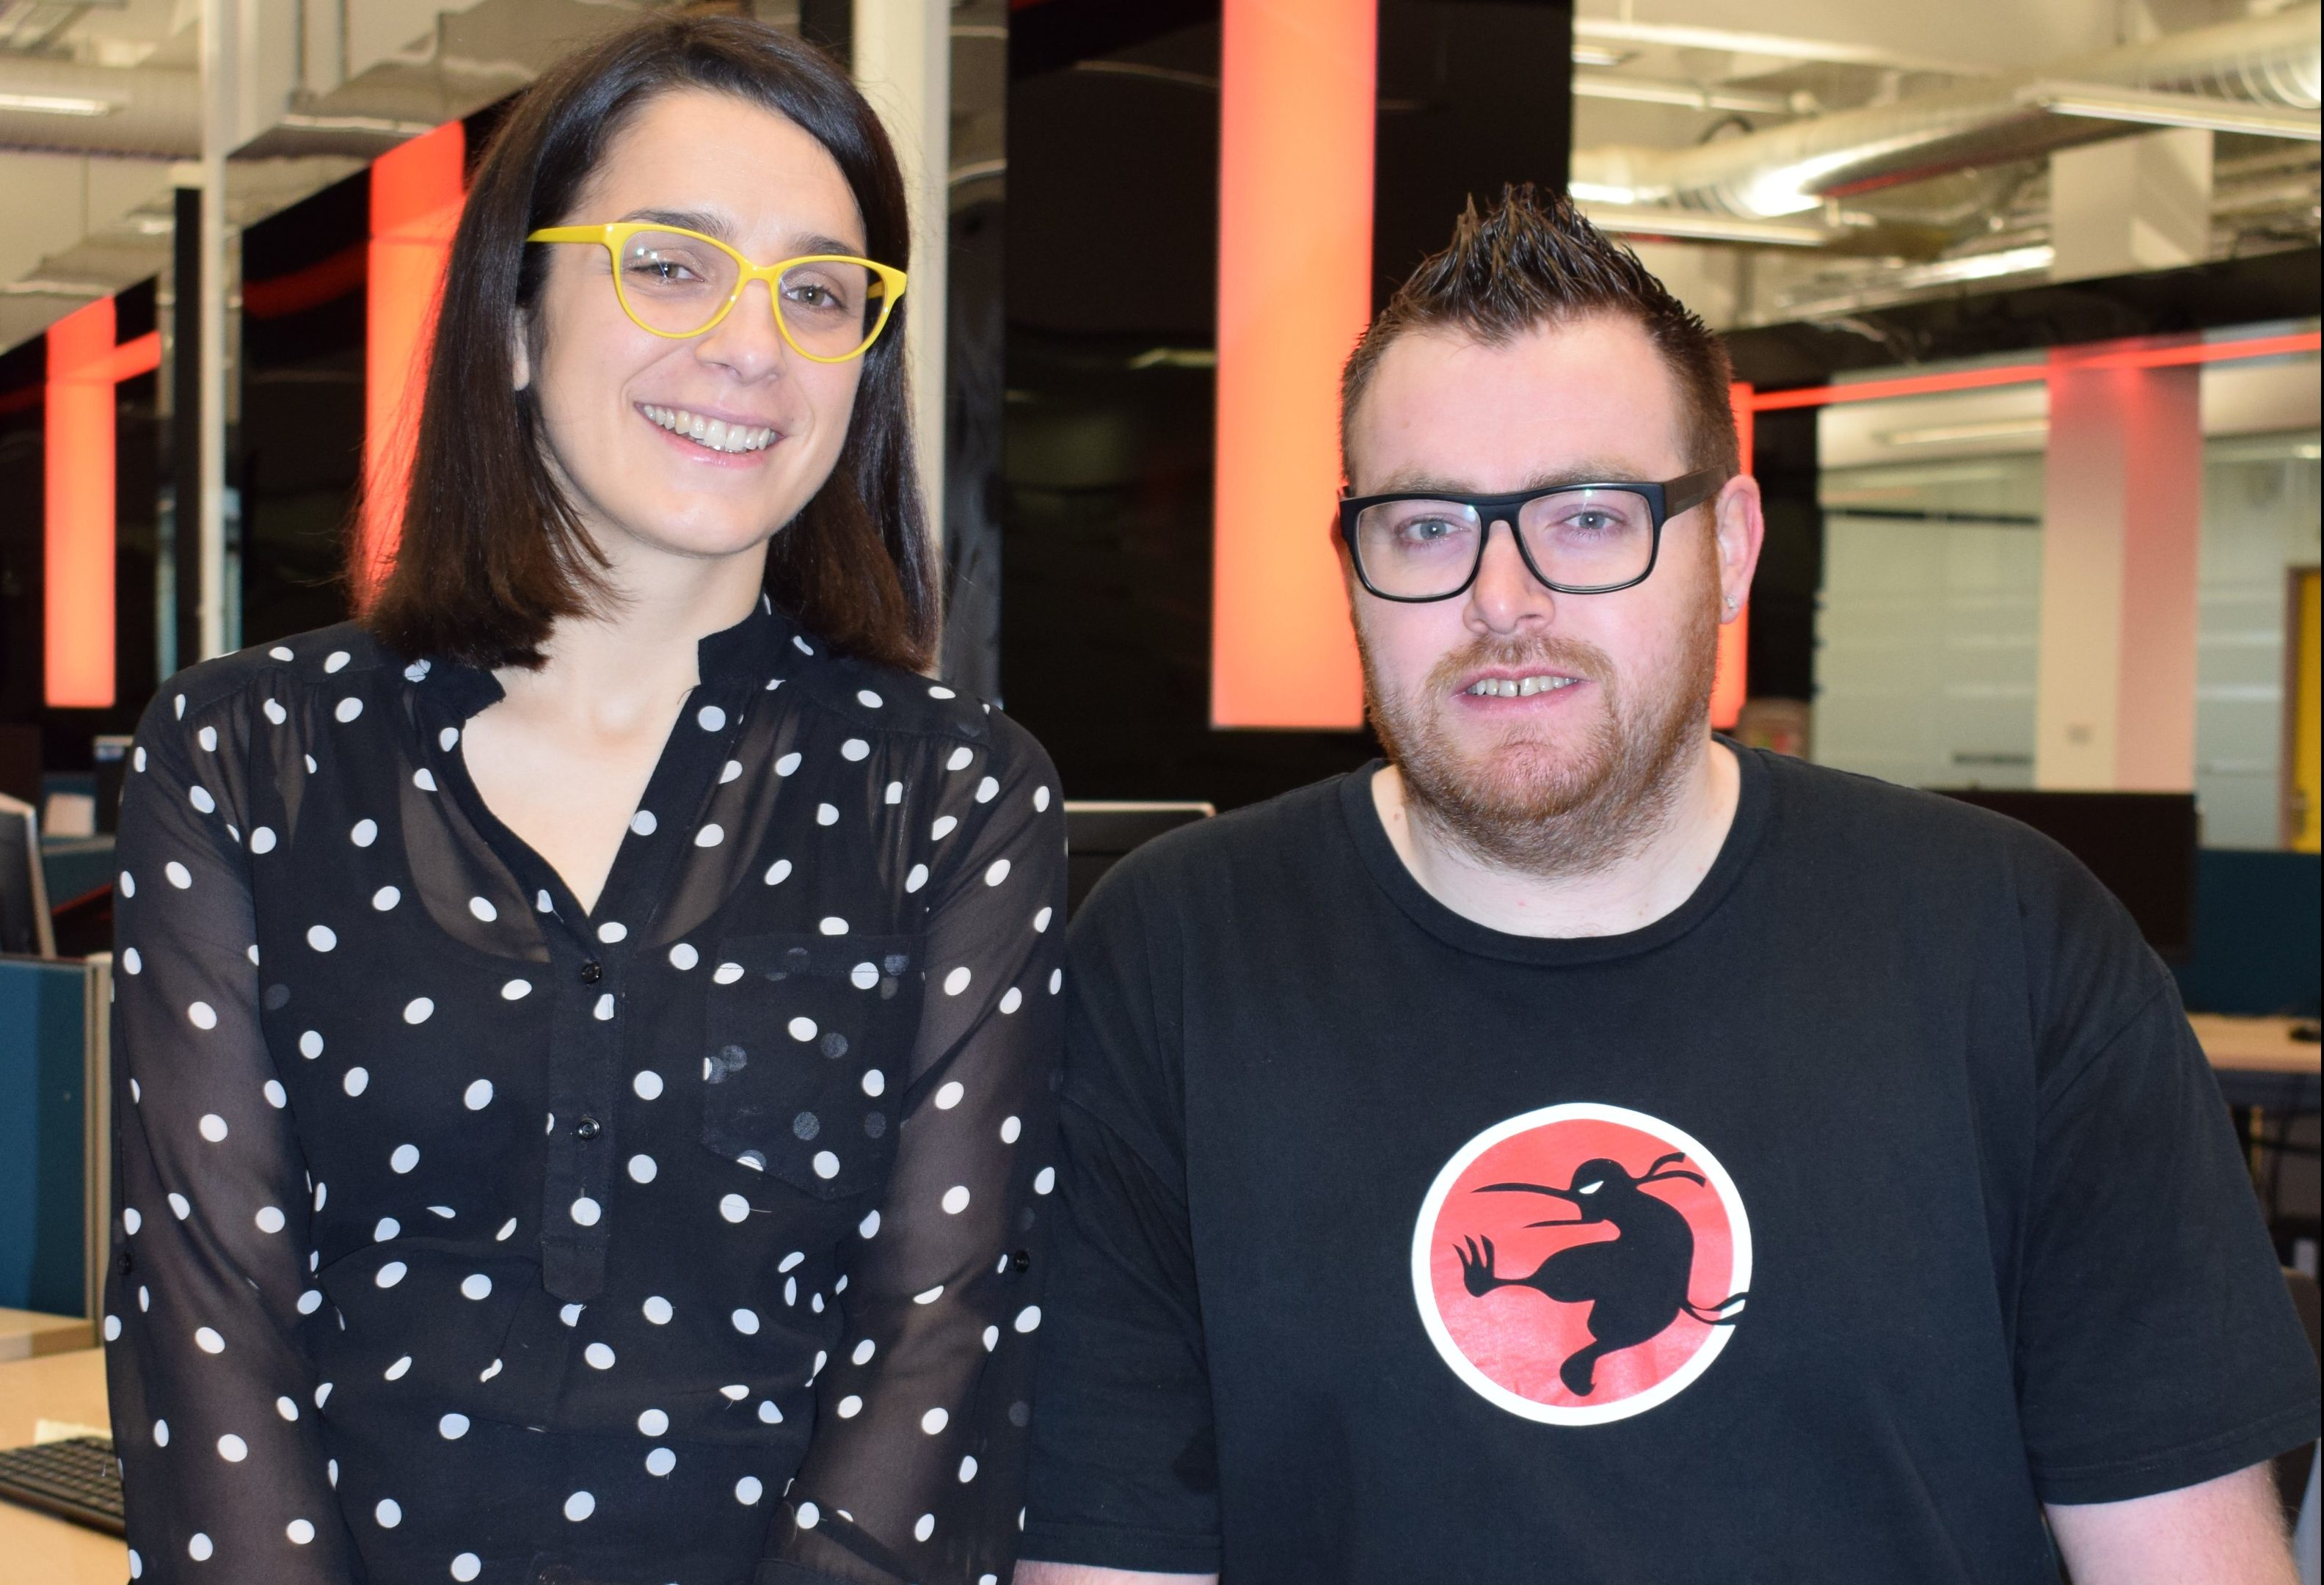 Abertay Computer Arts lecturer Lynn Parker in the University's Centre for Excellence with David Hamilton, Executive Vice President of Ninja Kiwi Europe